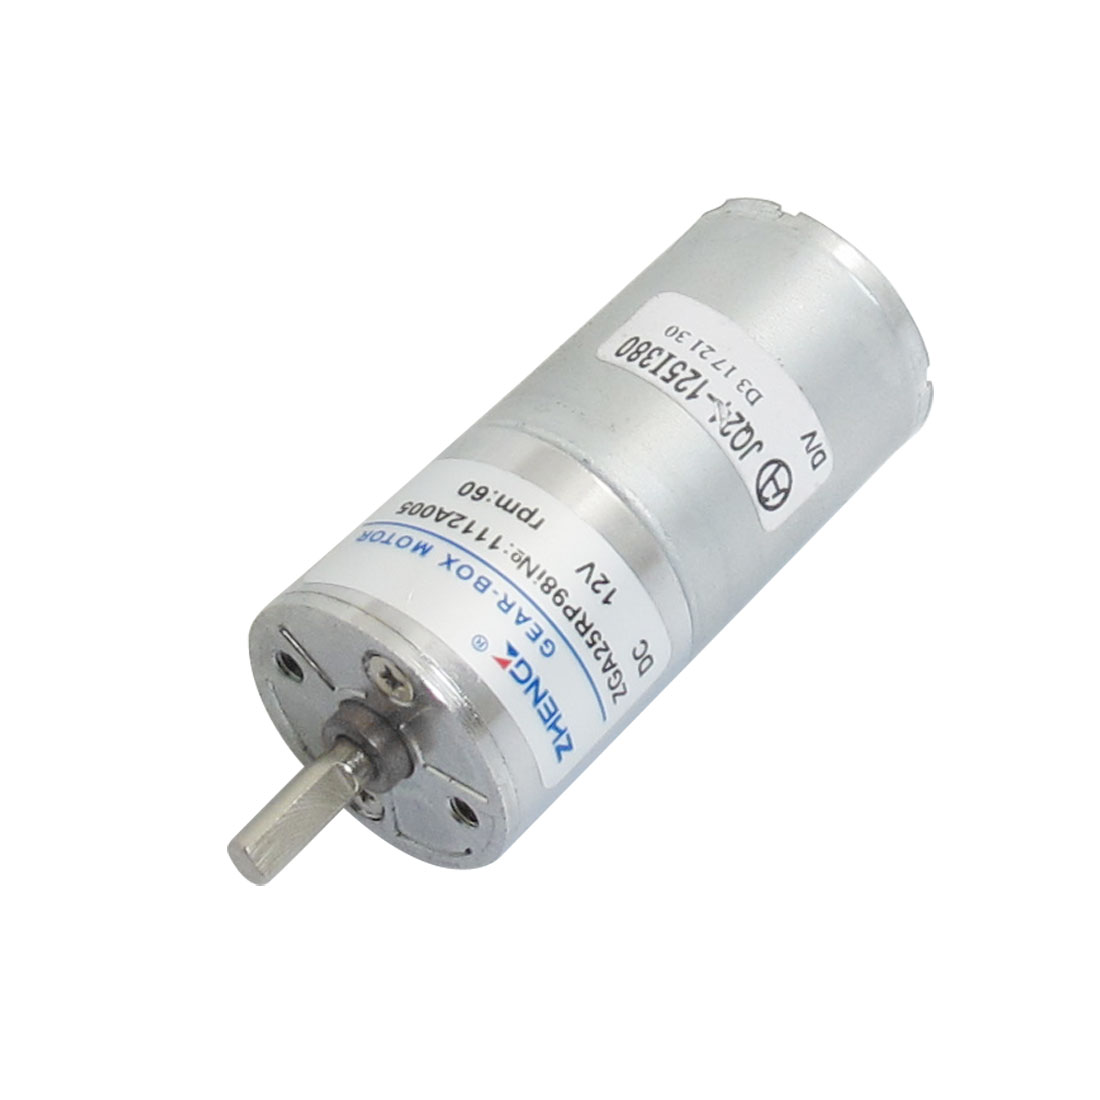 DC 12V 60RPM Speed Reducing Power Geared Motor 25mm x 53mm